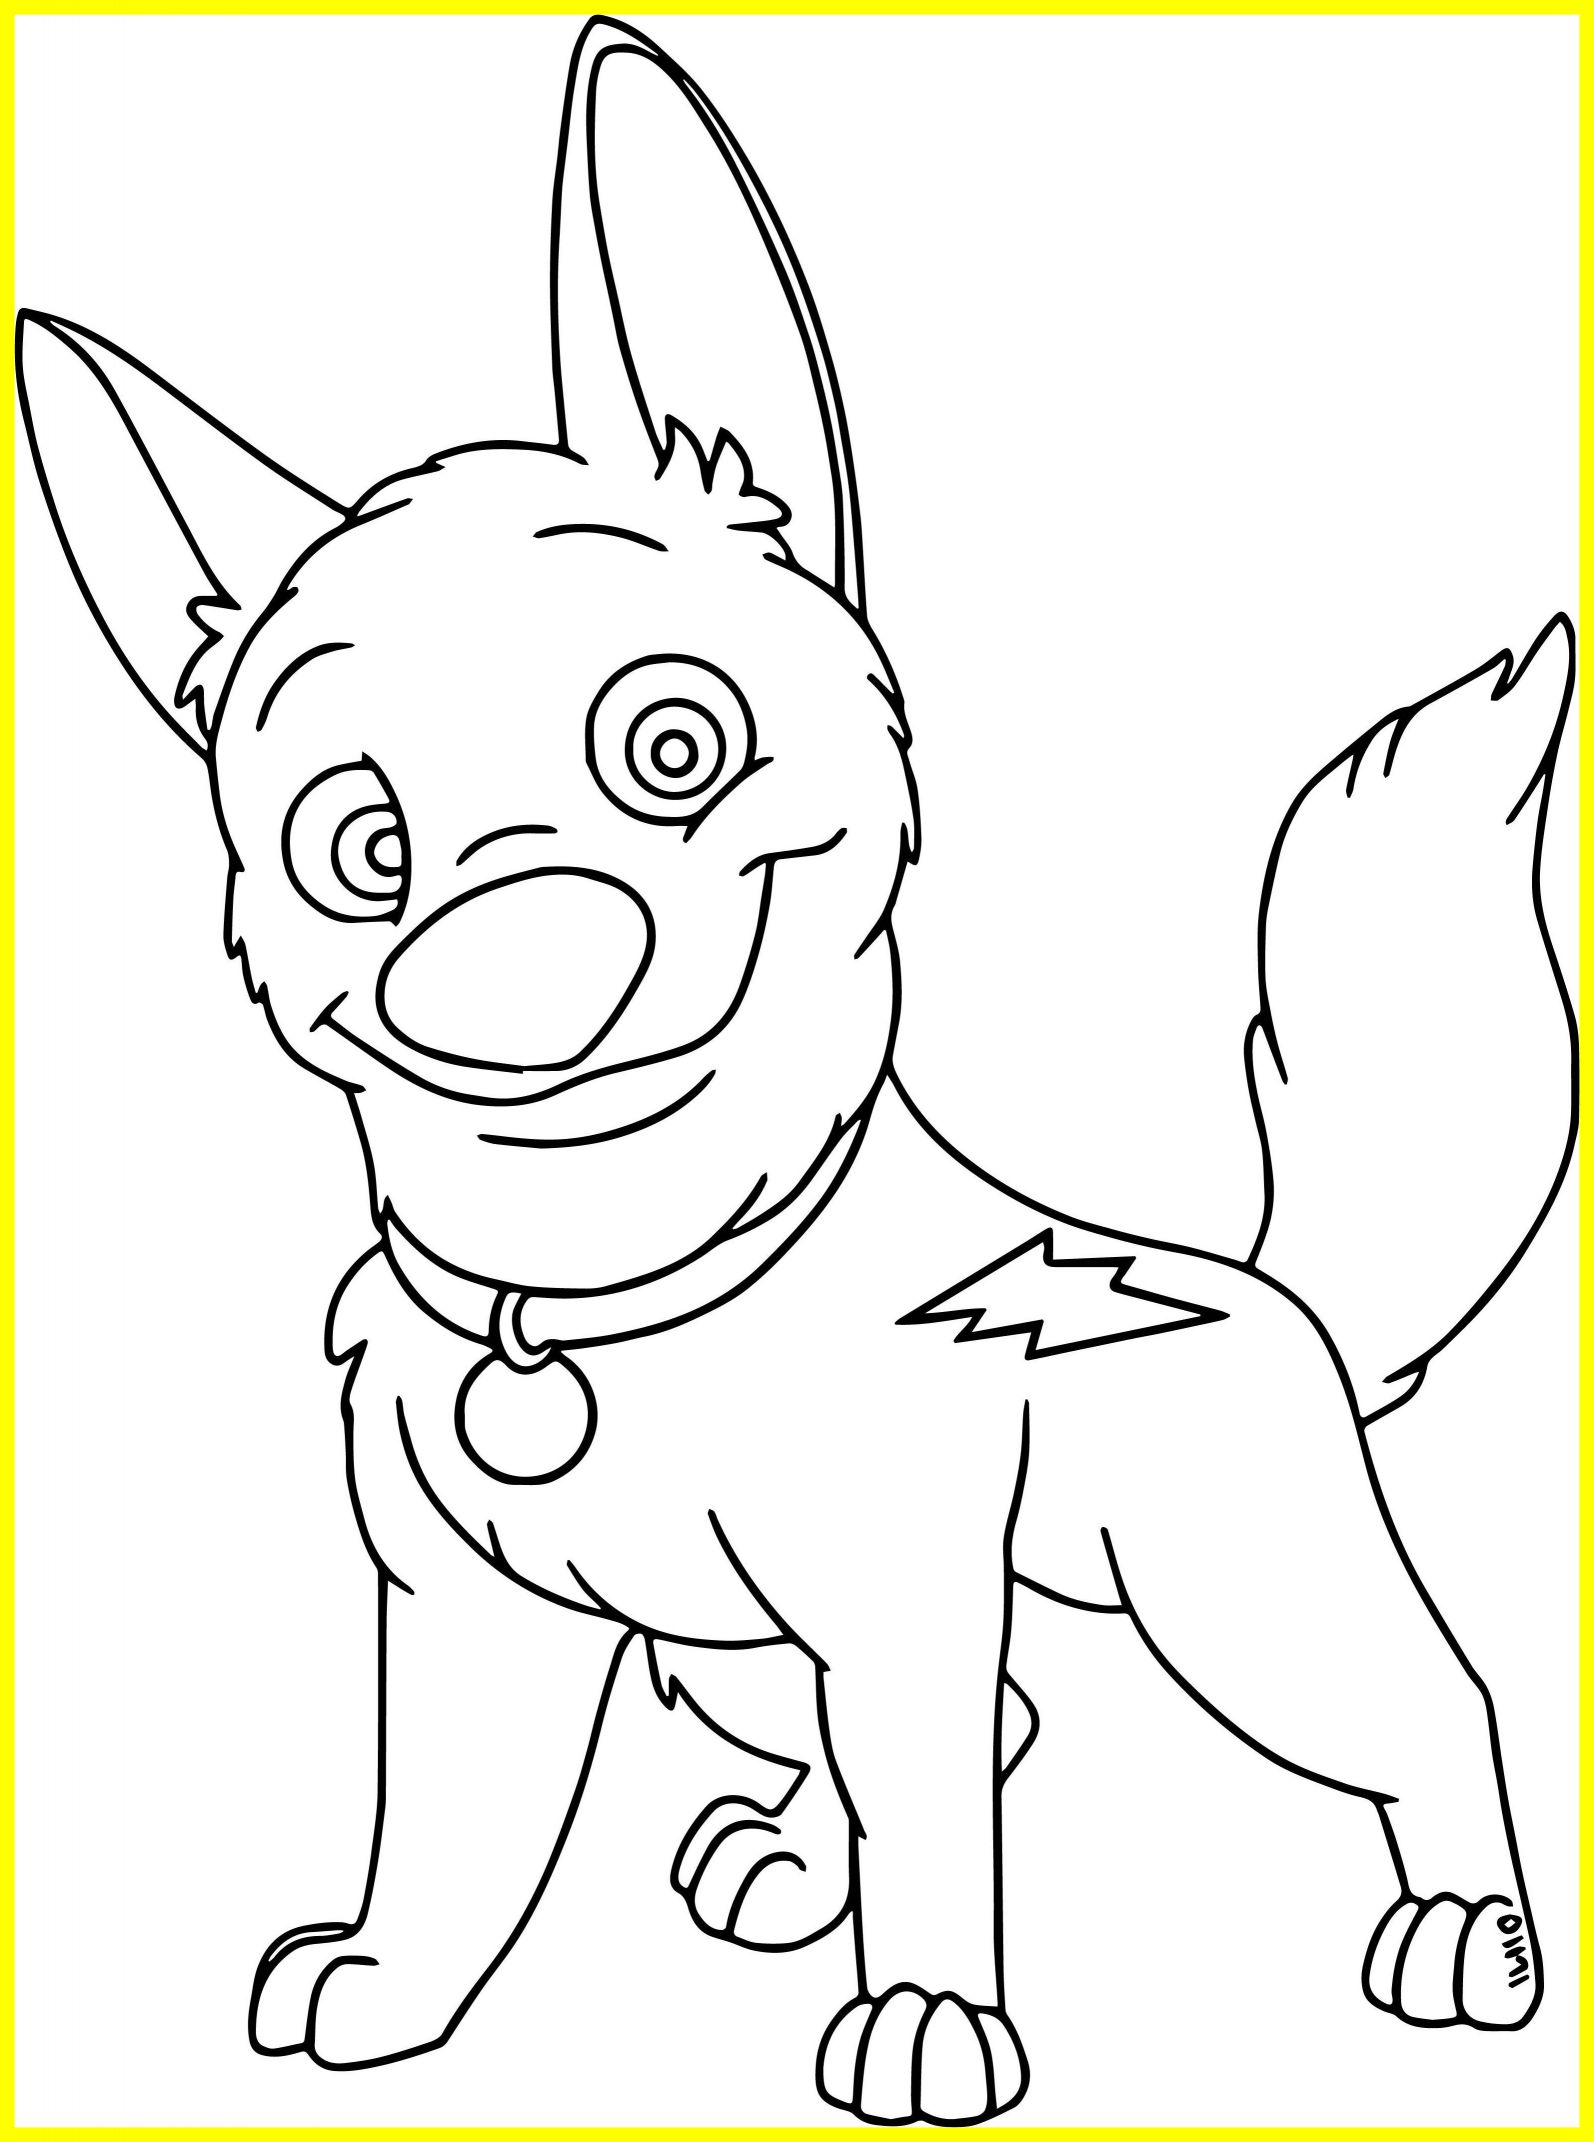 1594x2142 Inspiring Cute Bolt Dog Coloring Pages Wecoloringpage For Clifford